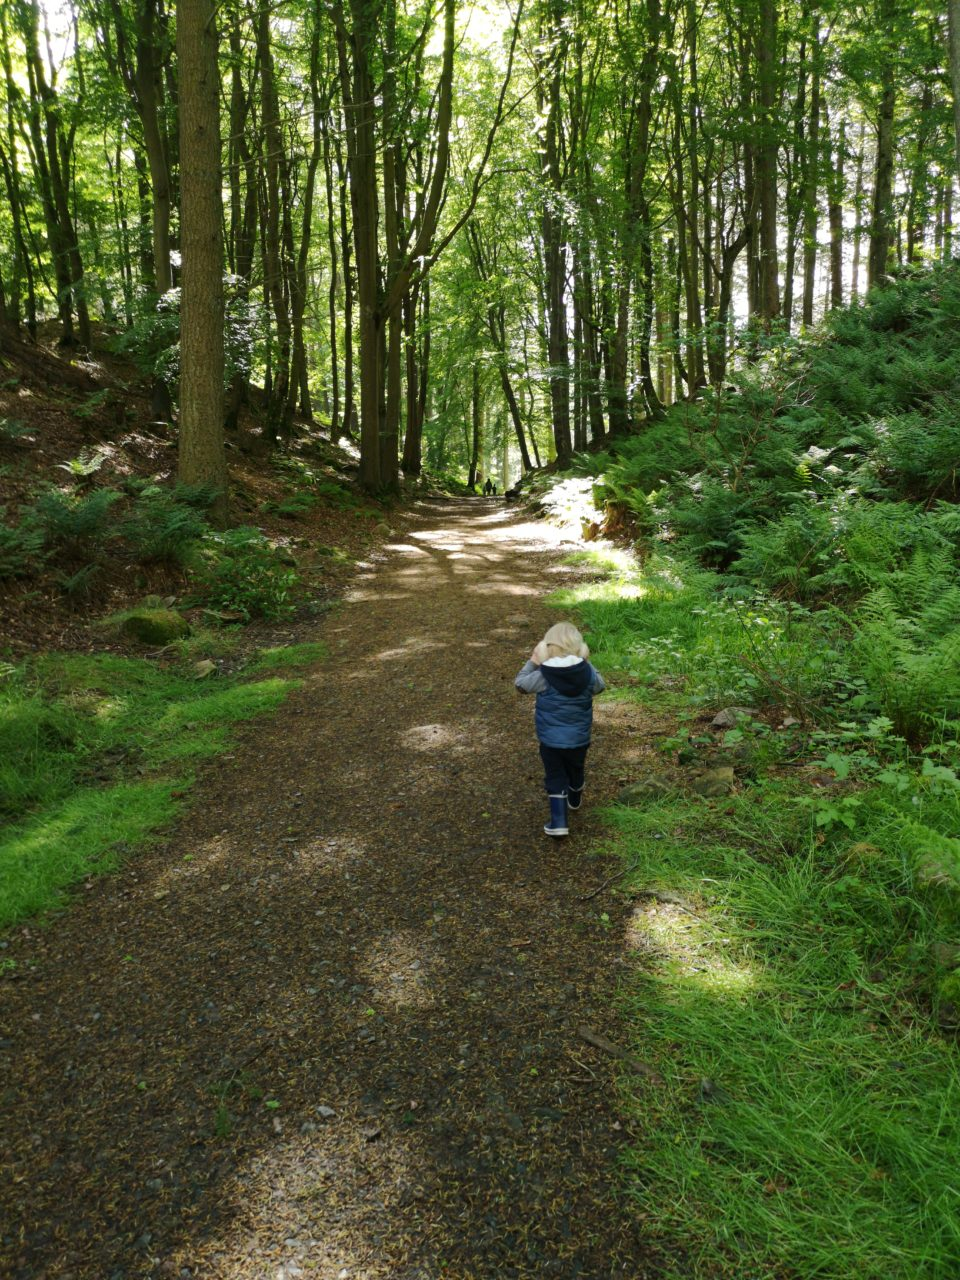 Exploring as a family of 4. Toddler walking in the woods